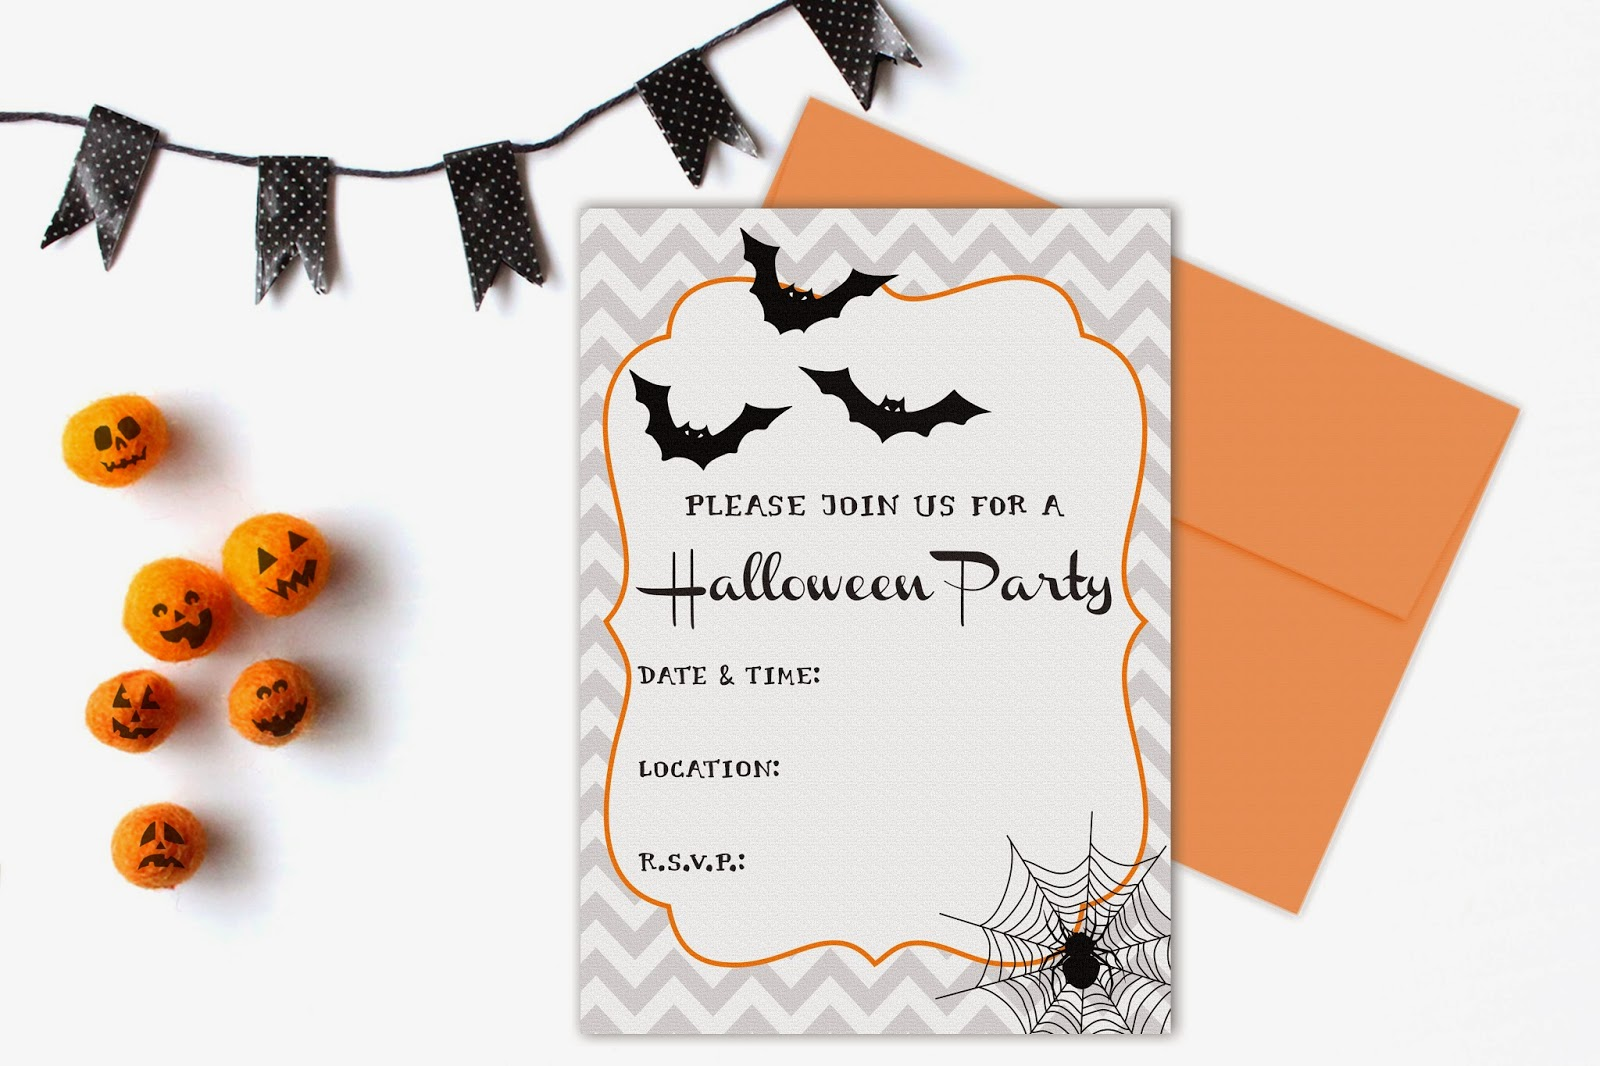 DIY Halloween Party Invitations by Designed By M.E. Stationery